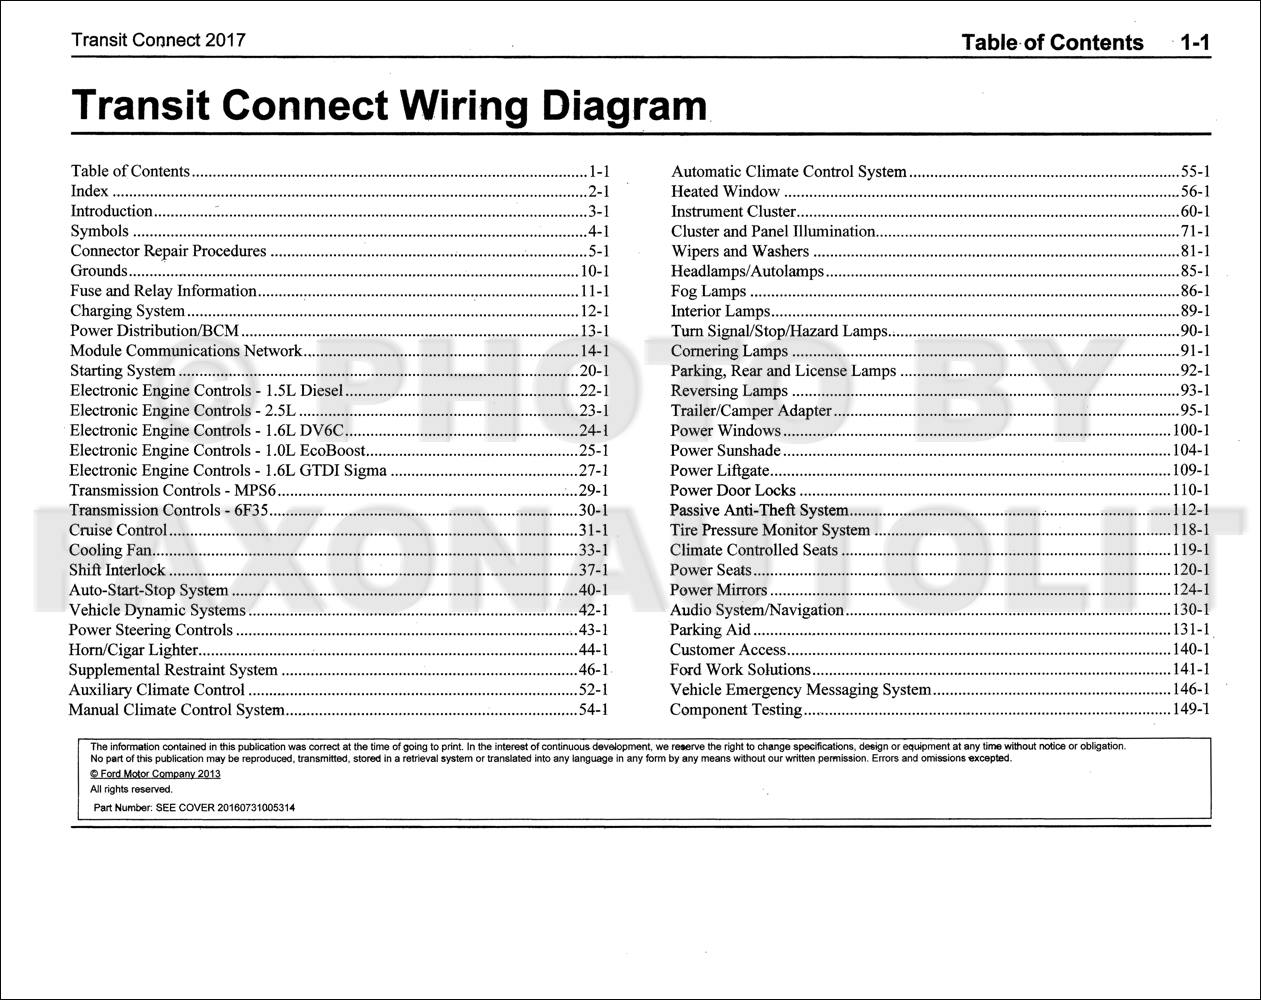 2012 ford transit fuse box diagram 2012 ford transit connect wiring diagram manual original ... 2012 ford transit connect wiring diagram #12